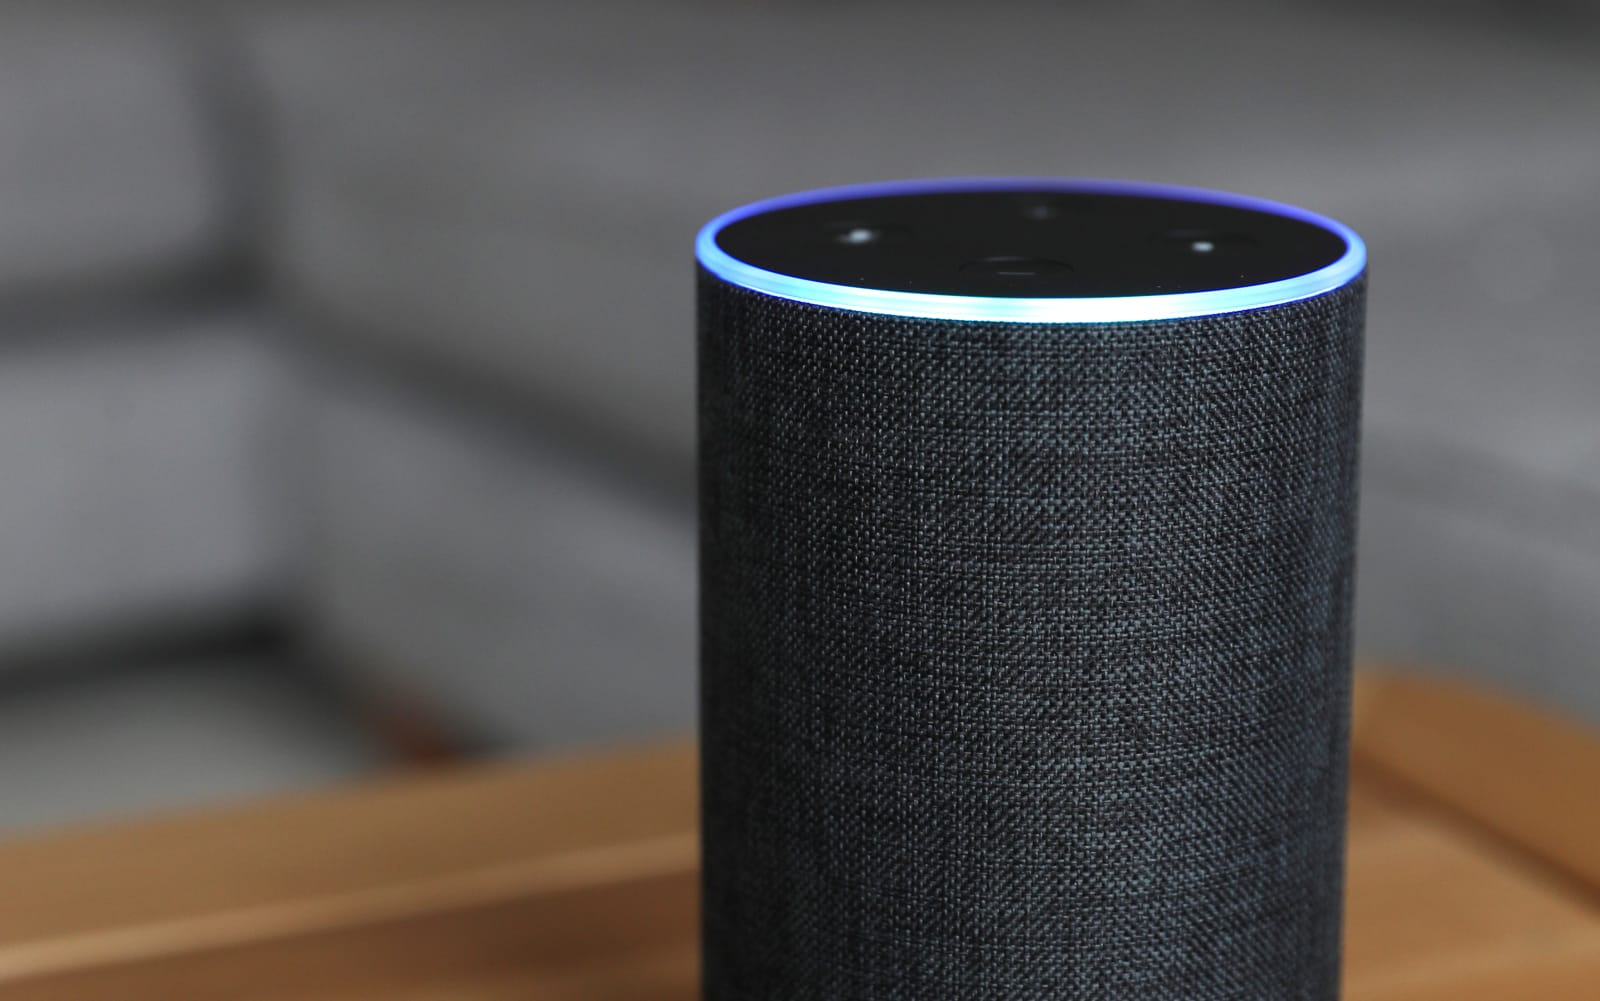 reputable site aaa1a 518f5 Amazon asks users for help with Alexa questions it can't answer